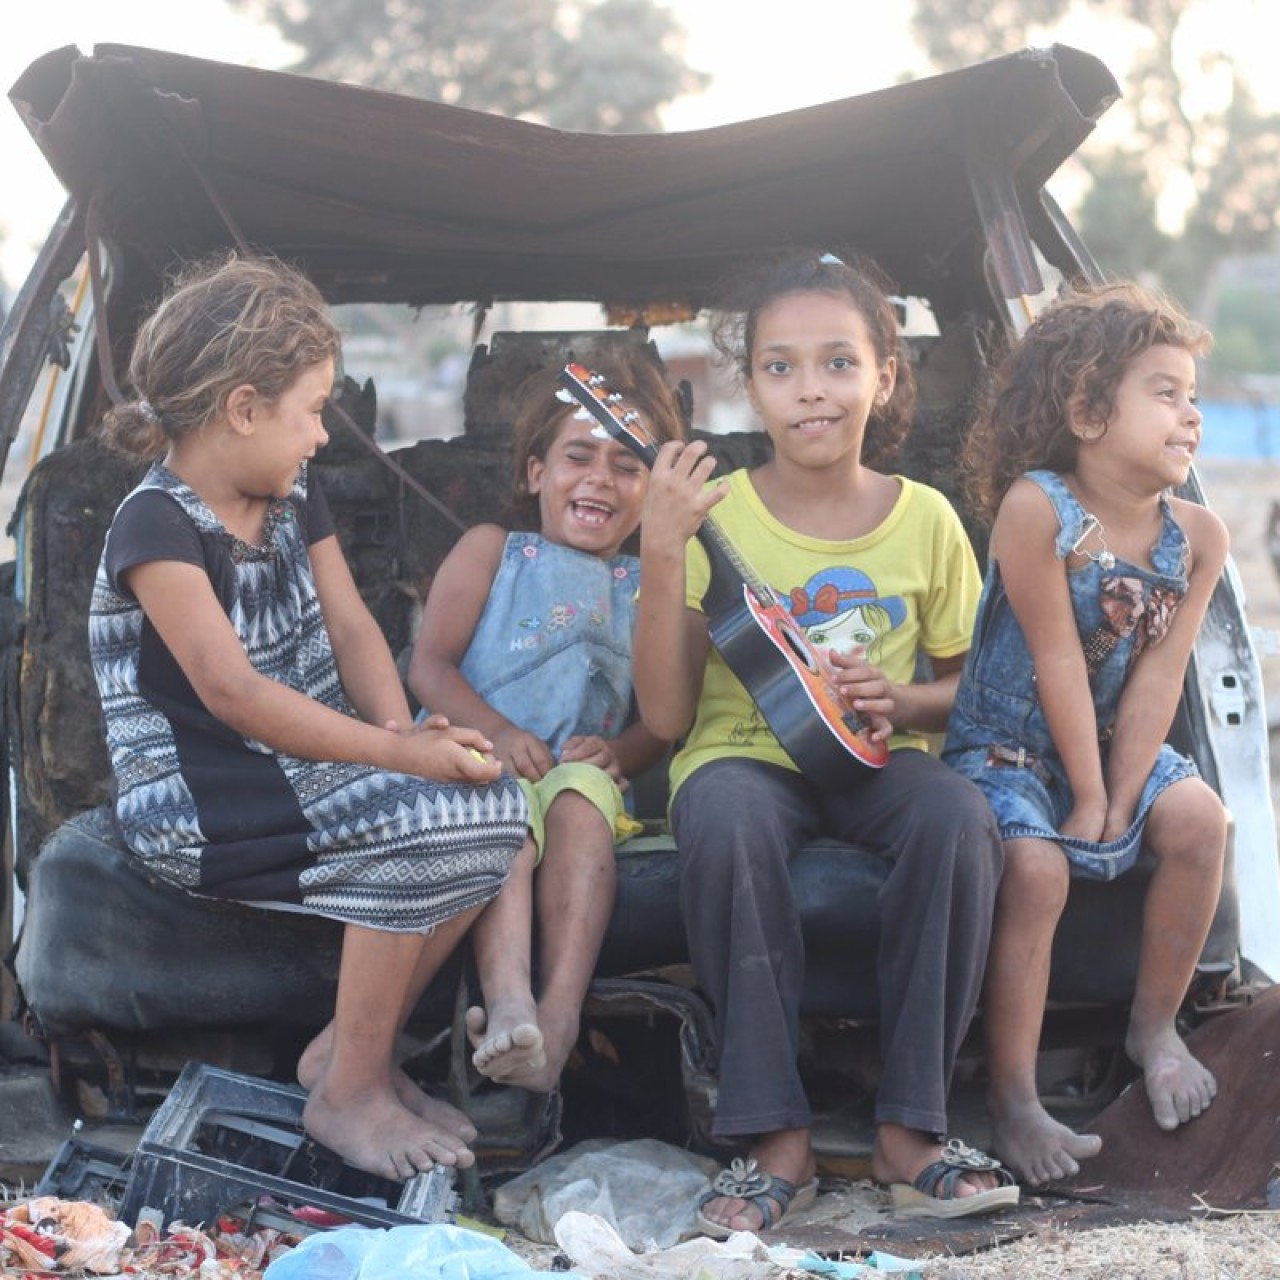 Young photographers from Gaza capture moments of joy | International